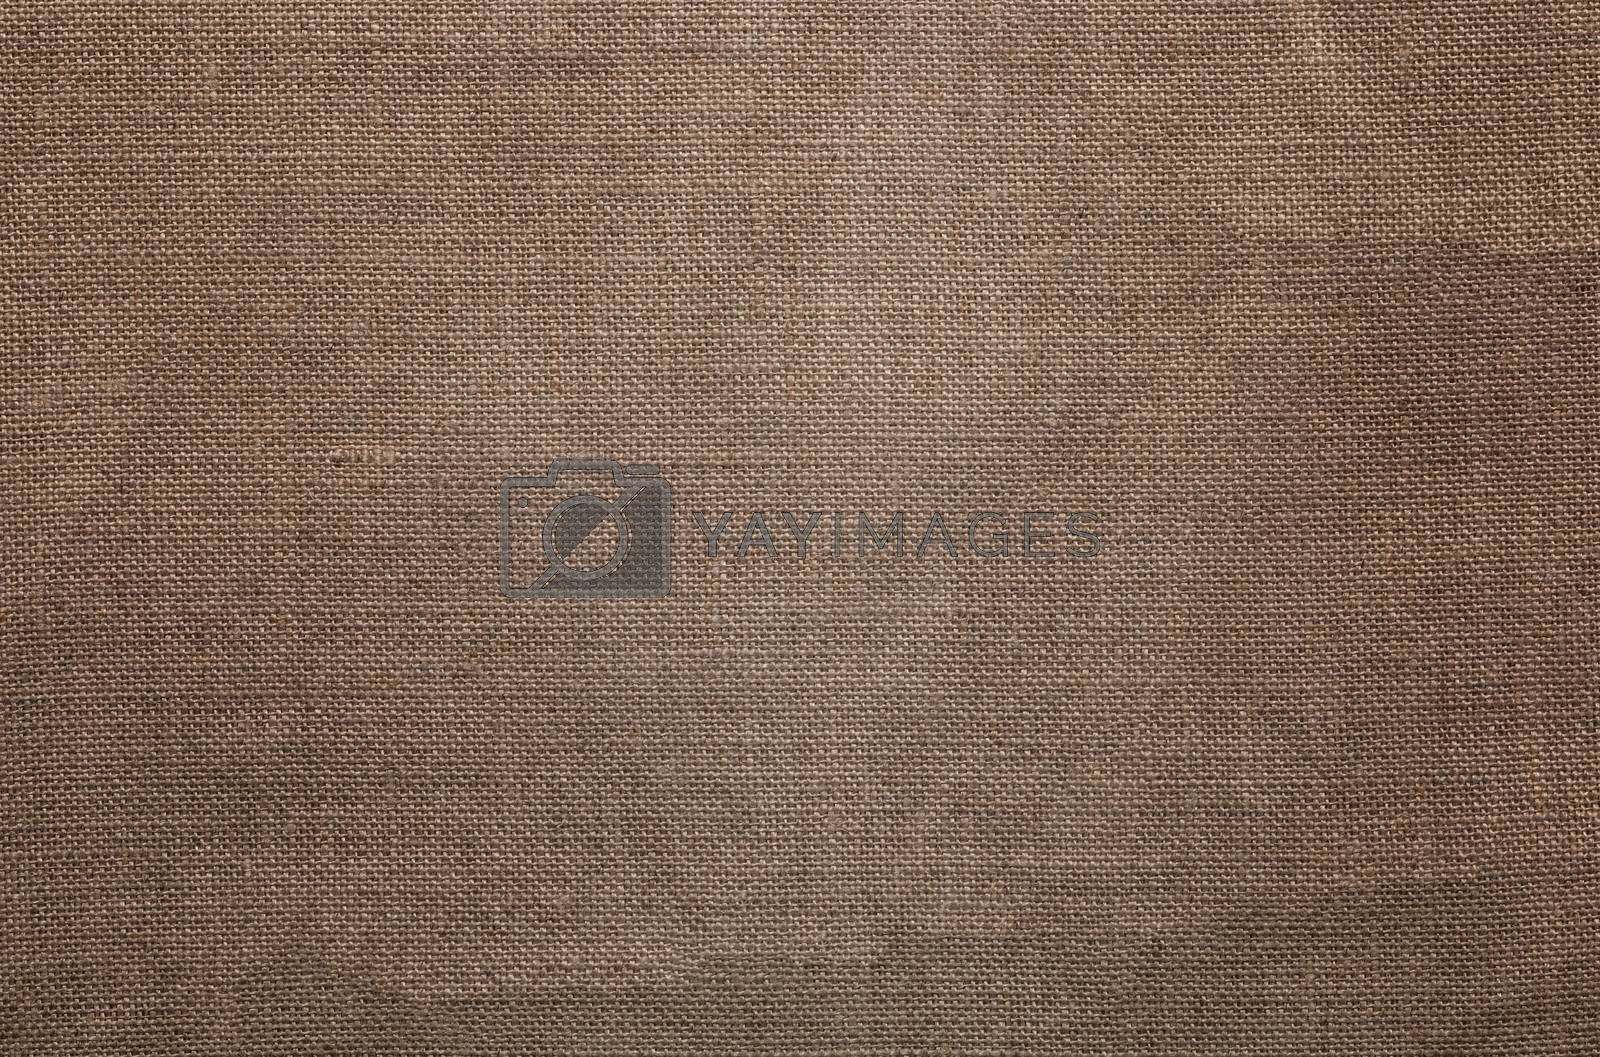 burlap texture background, Texture sack sacking country background